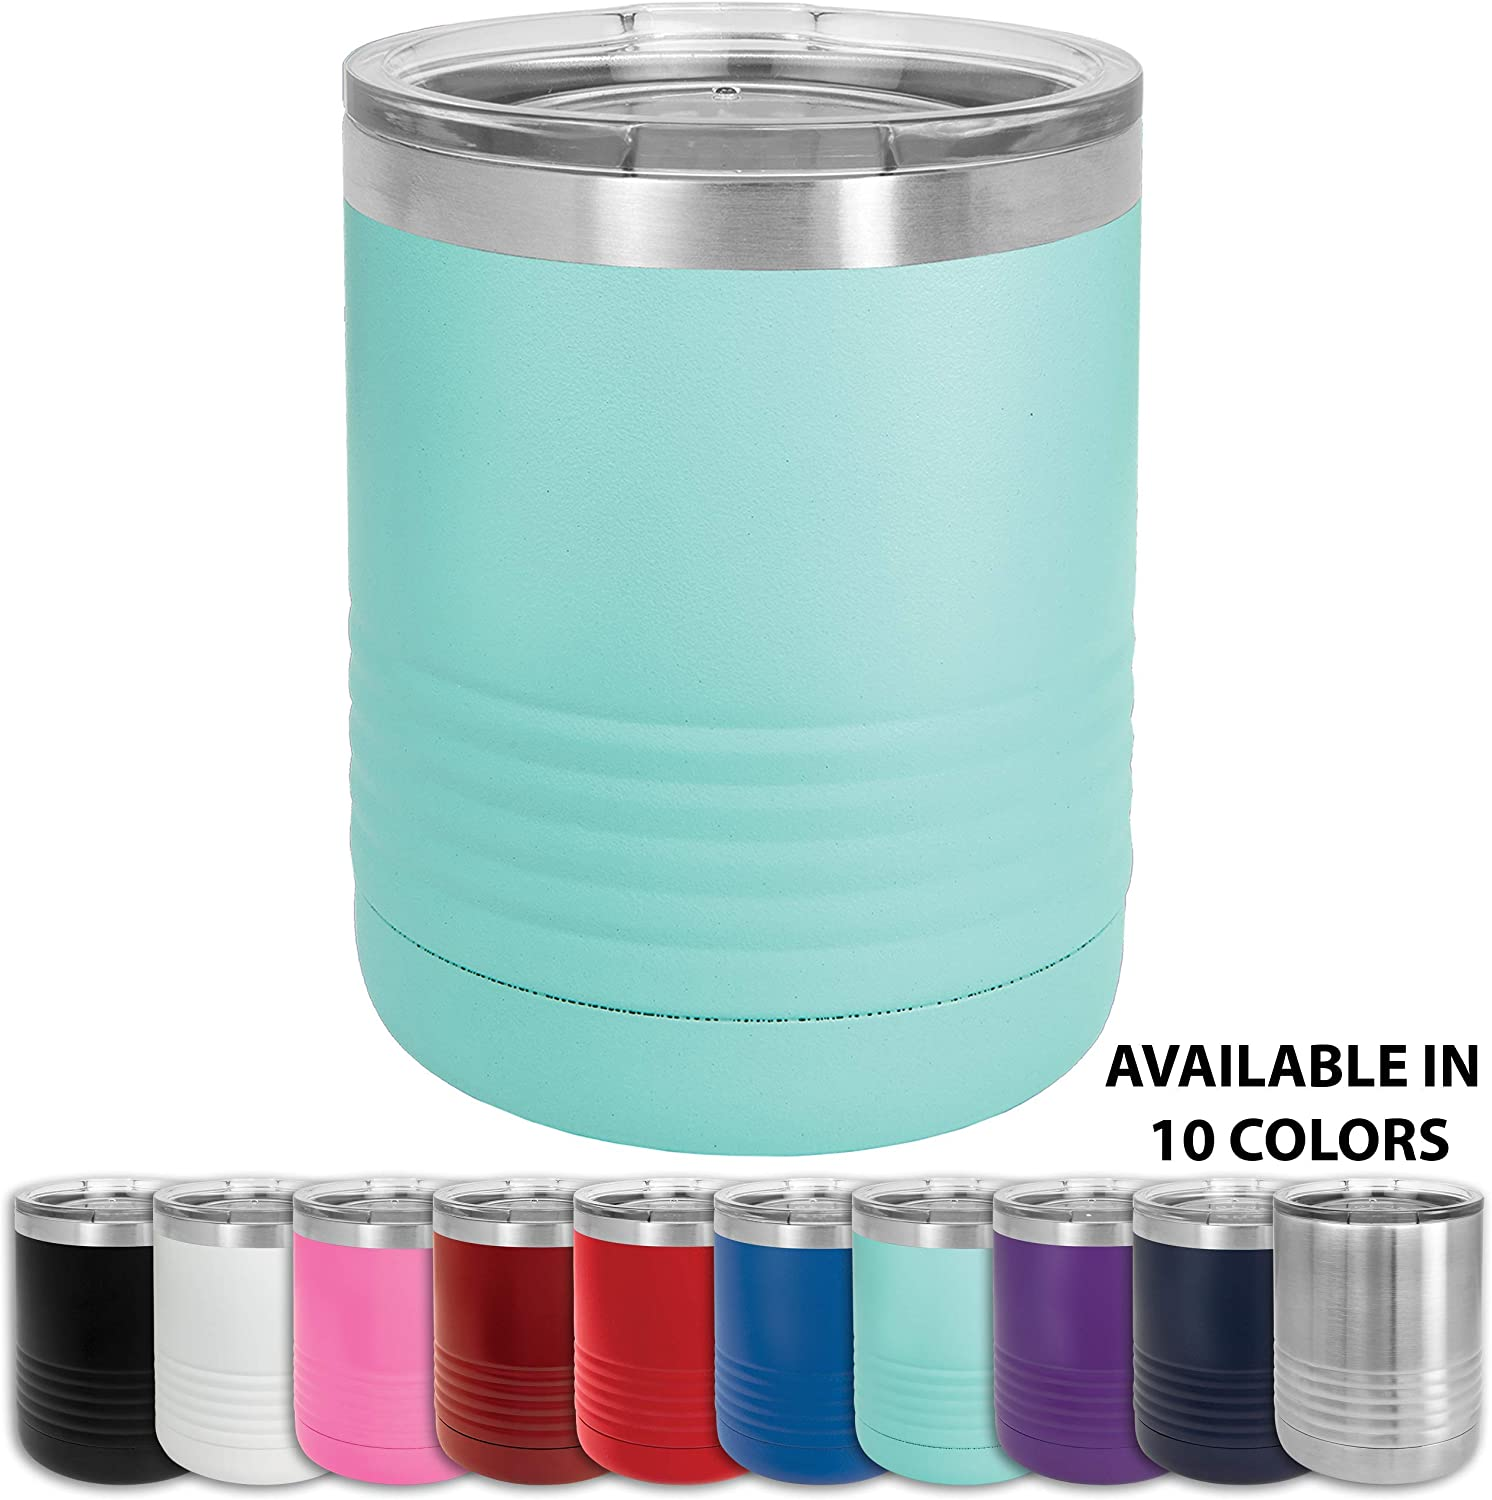 Clear Water Home Goods - 10 oz Stainless Steel Double Wall Vacuum Insulated Lowball Travel Tumbler Mug Keeps Drinks Hot or Cold 2x Longer than Other Coffee and Beverage Thermos Cup - Teal